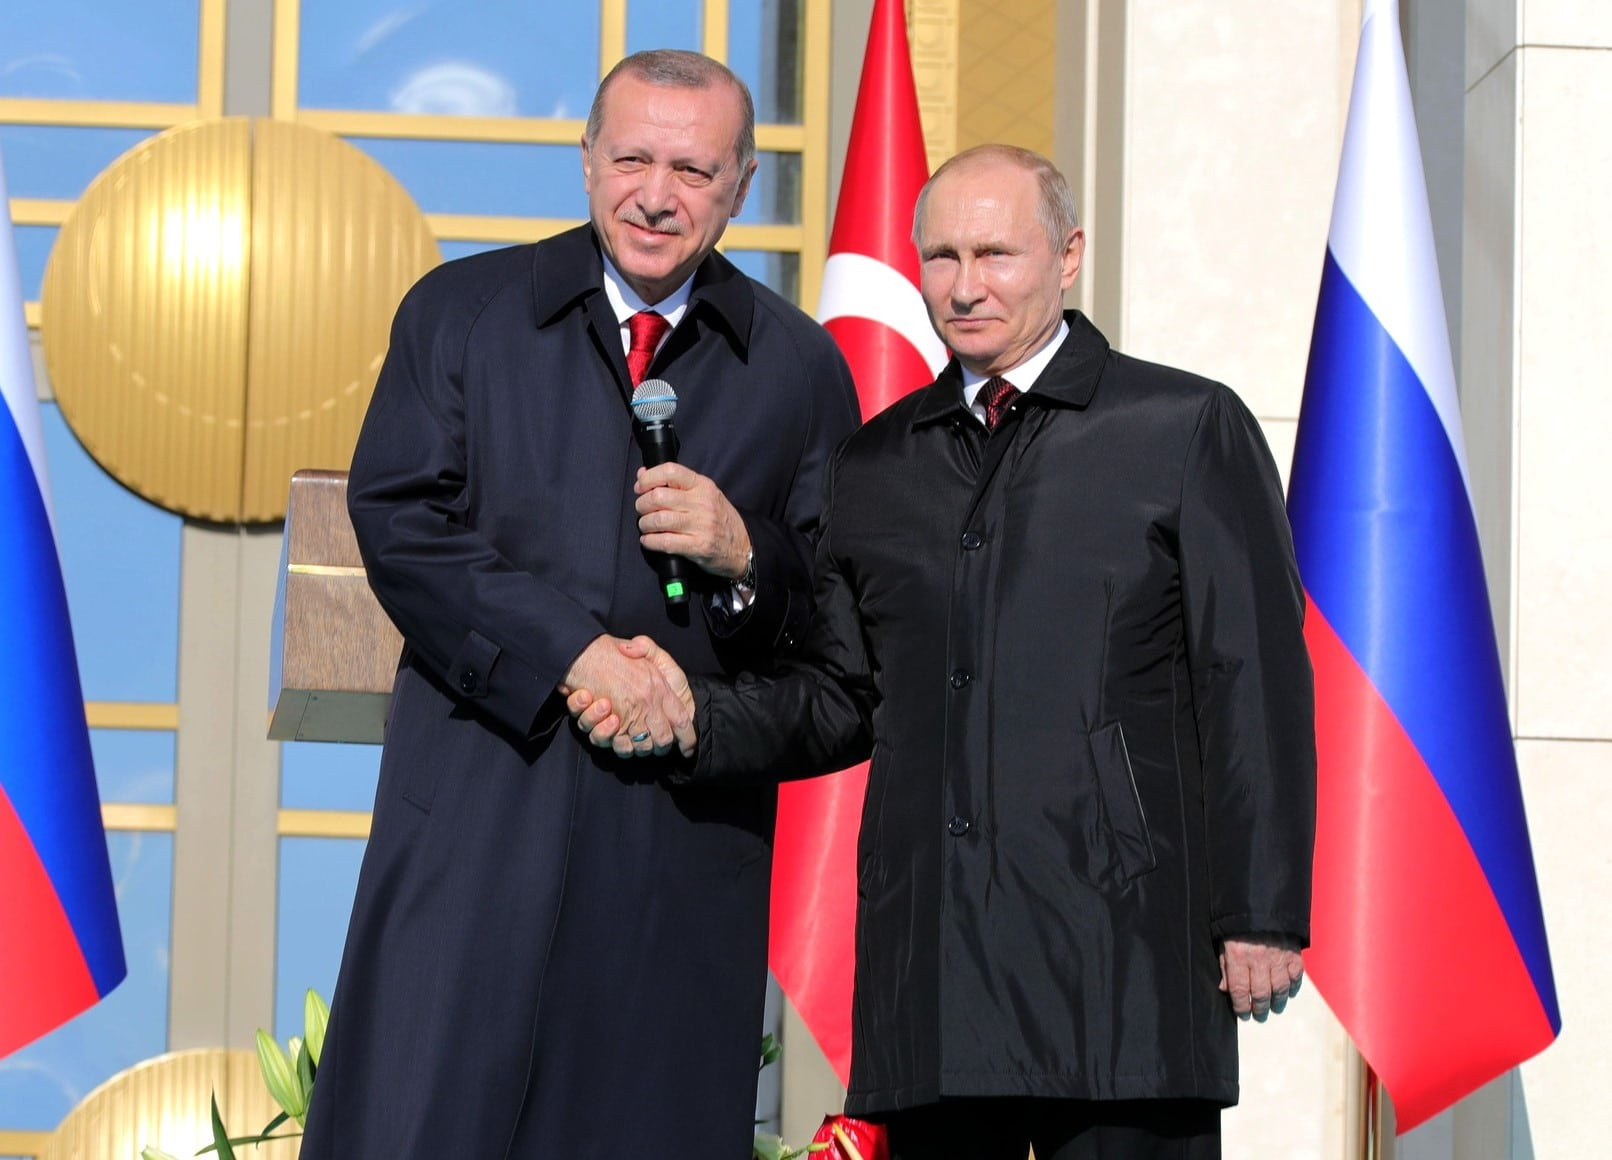 Conventional wisdom says Turkey won't go nuclear. That might be wrong.